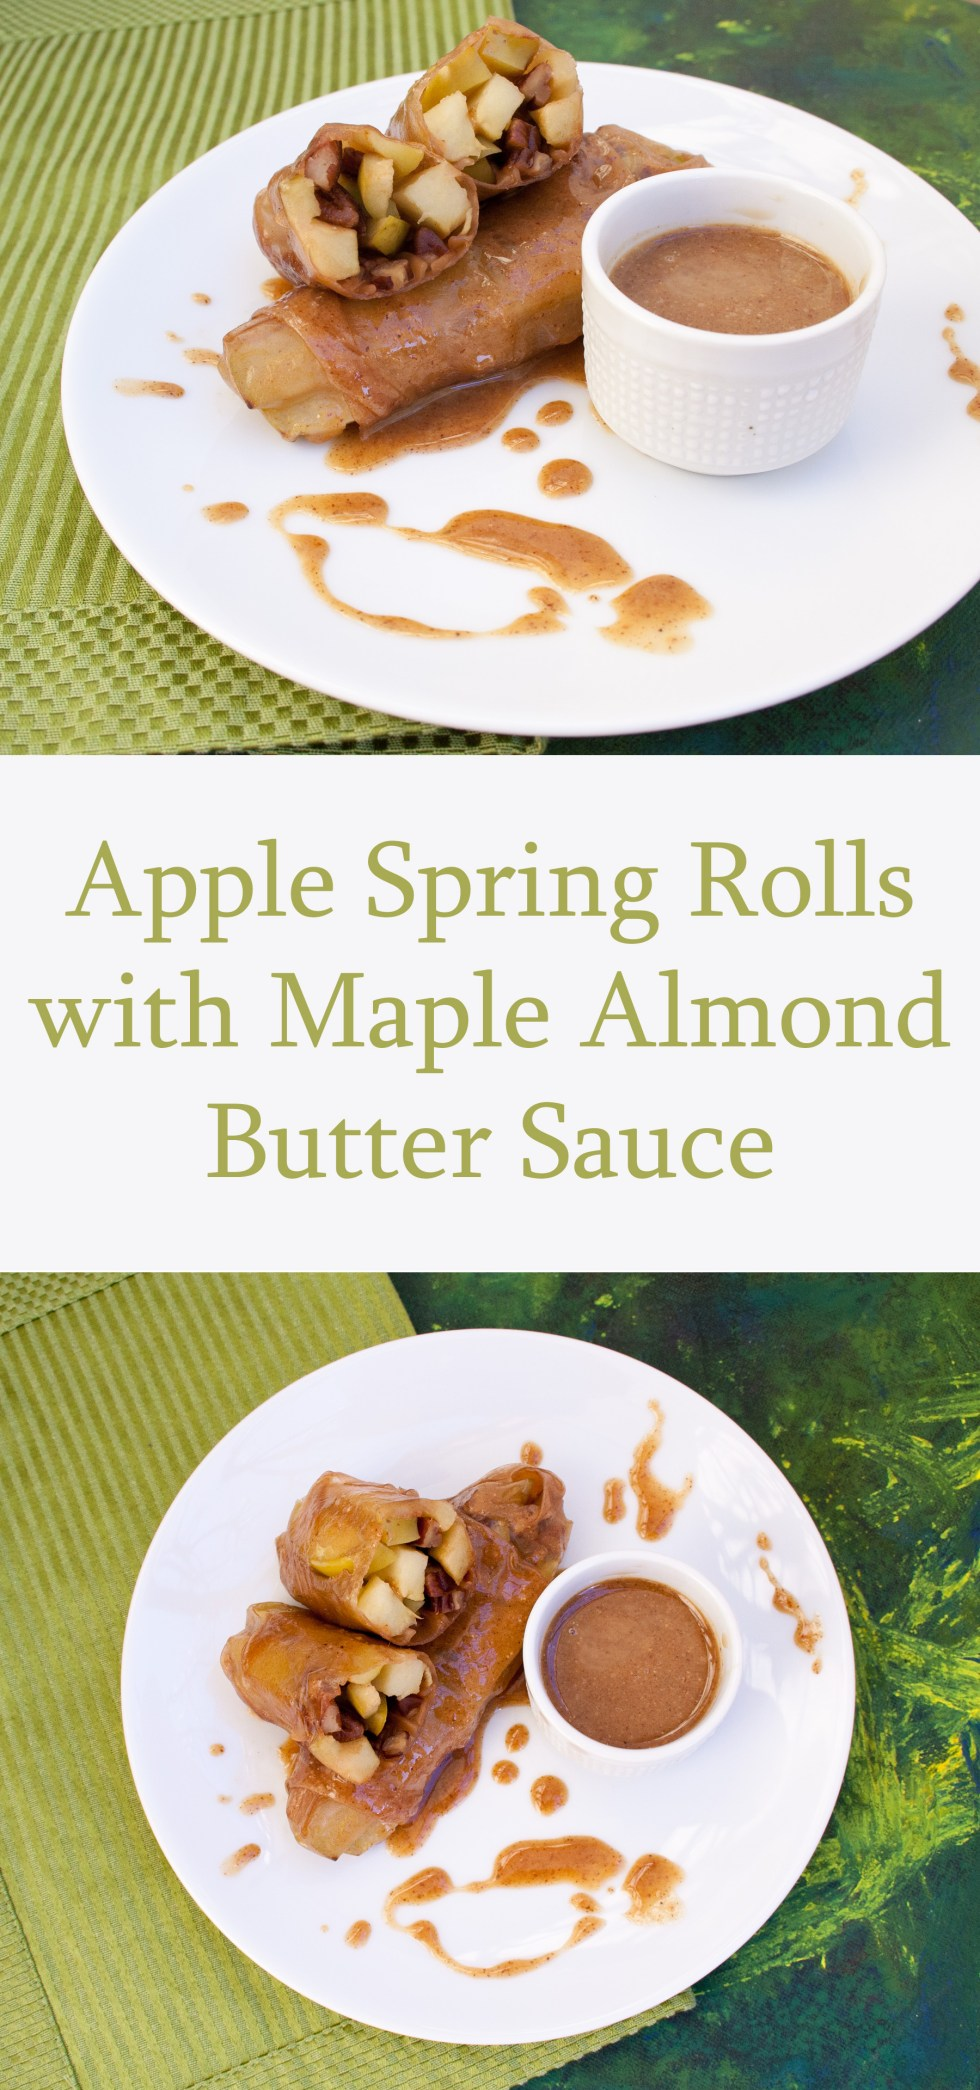 Apple Spring Rolls with Maple Almond Butter Sauce - These vegan spring rolls may become your new favorite dessert! If you like spring rolls, apples, and nut butter, these are for you!